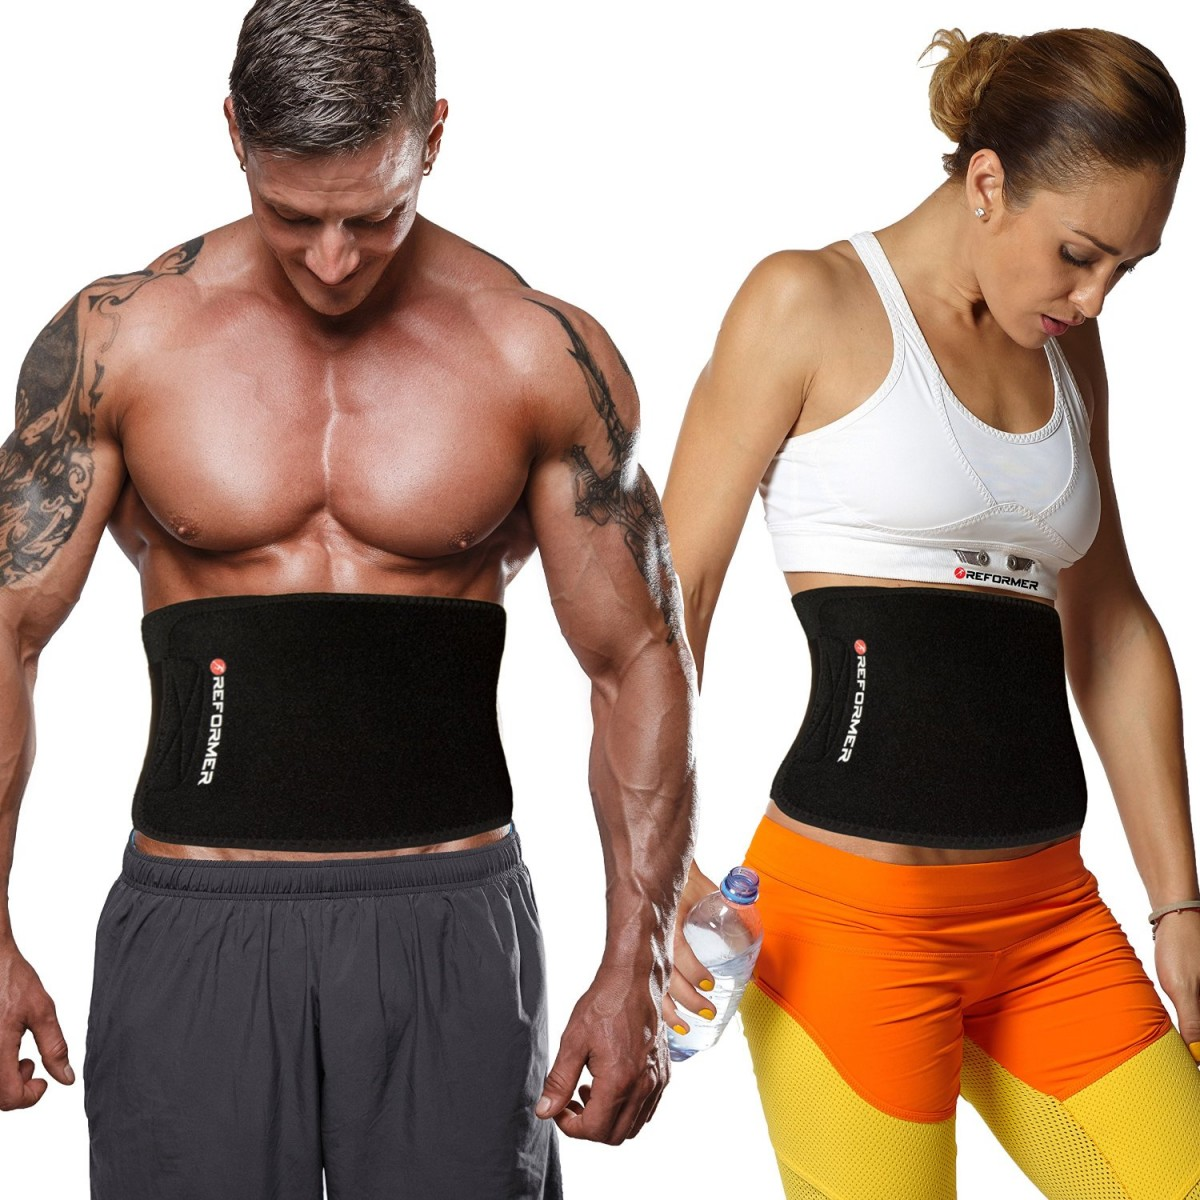 82d26ed5e5f2e Reformer Athletics Waist Trimmer Ab Belt For Faster Weight Loss